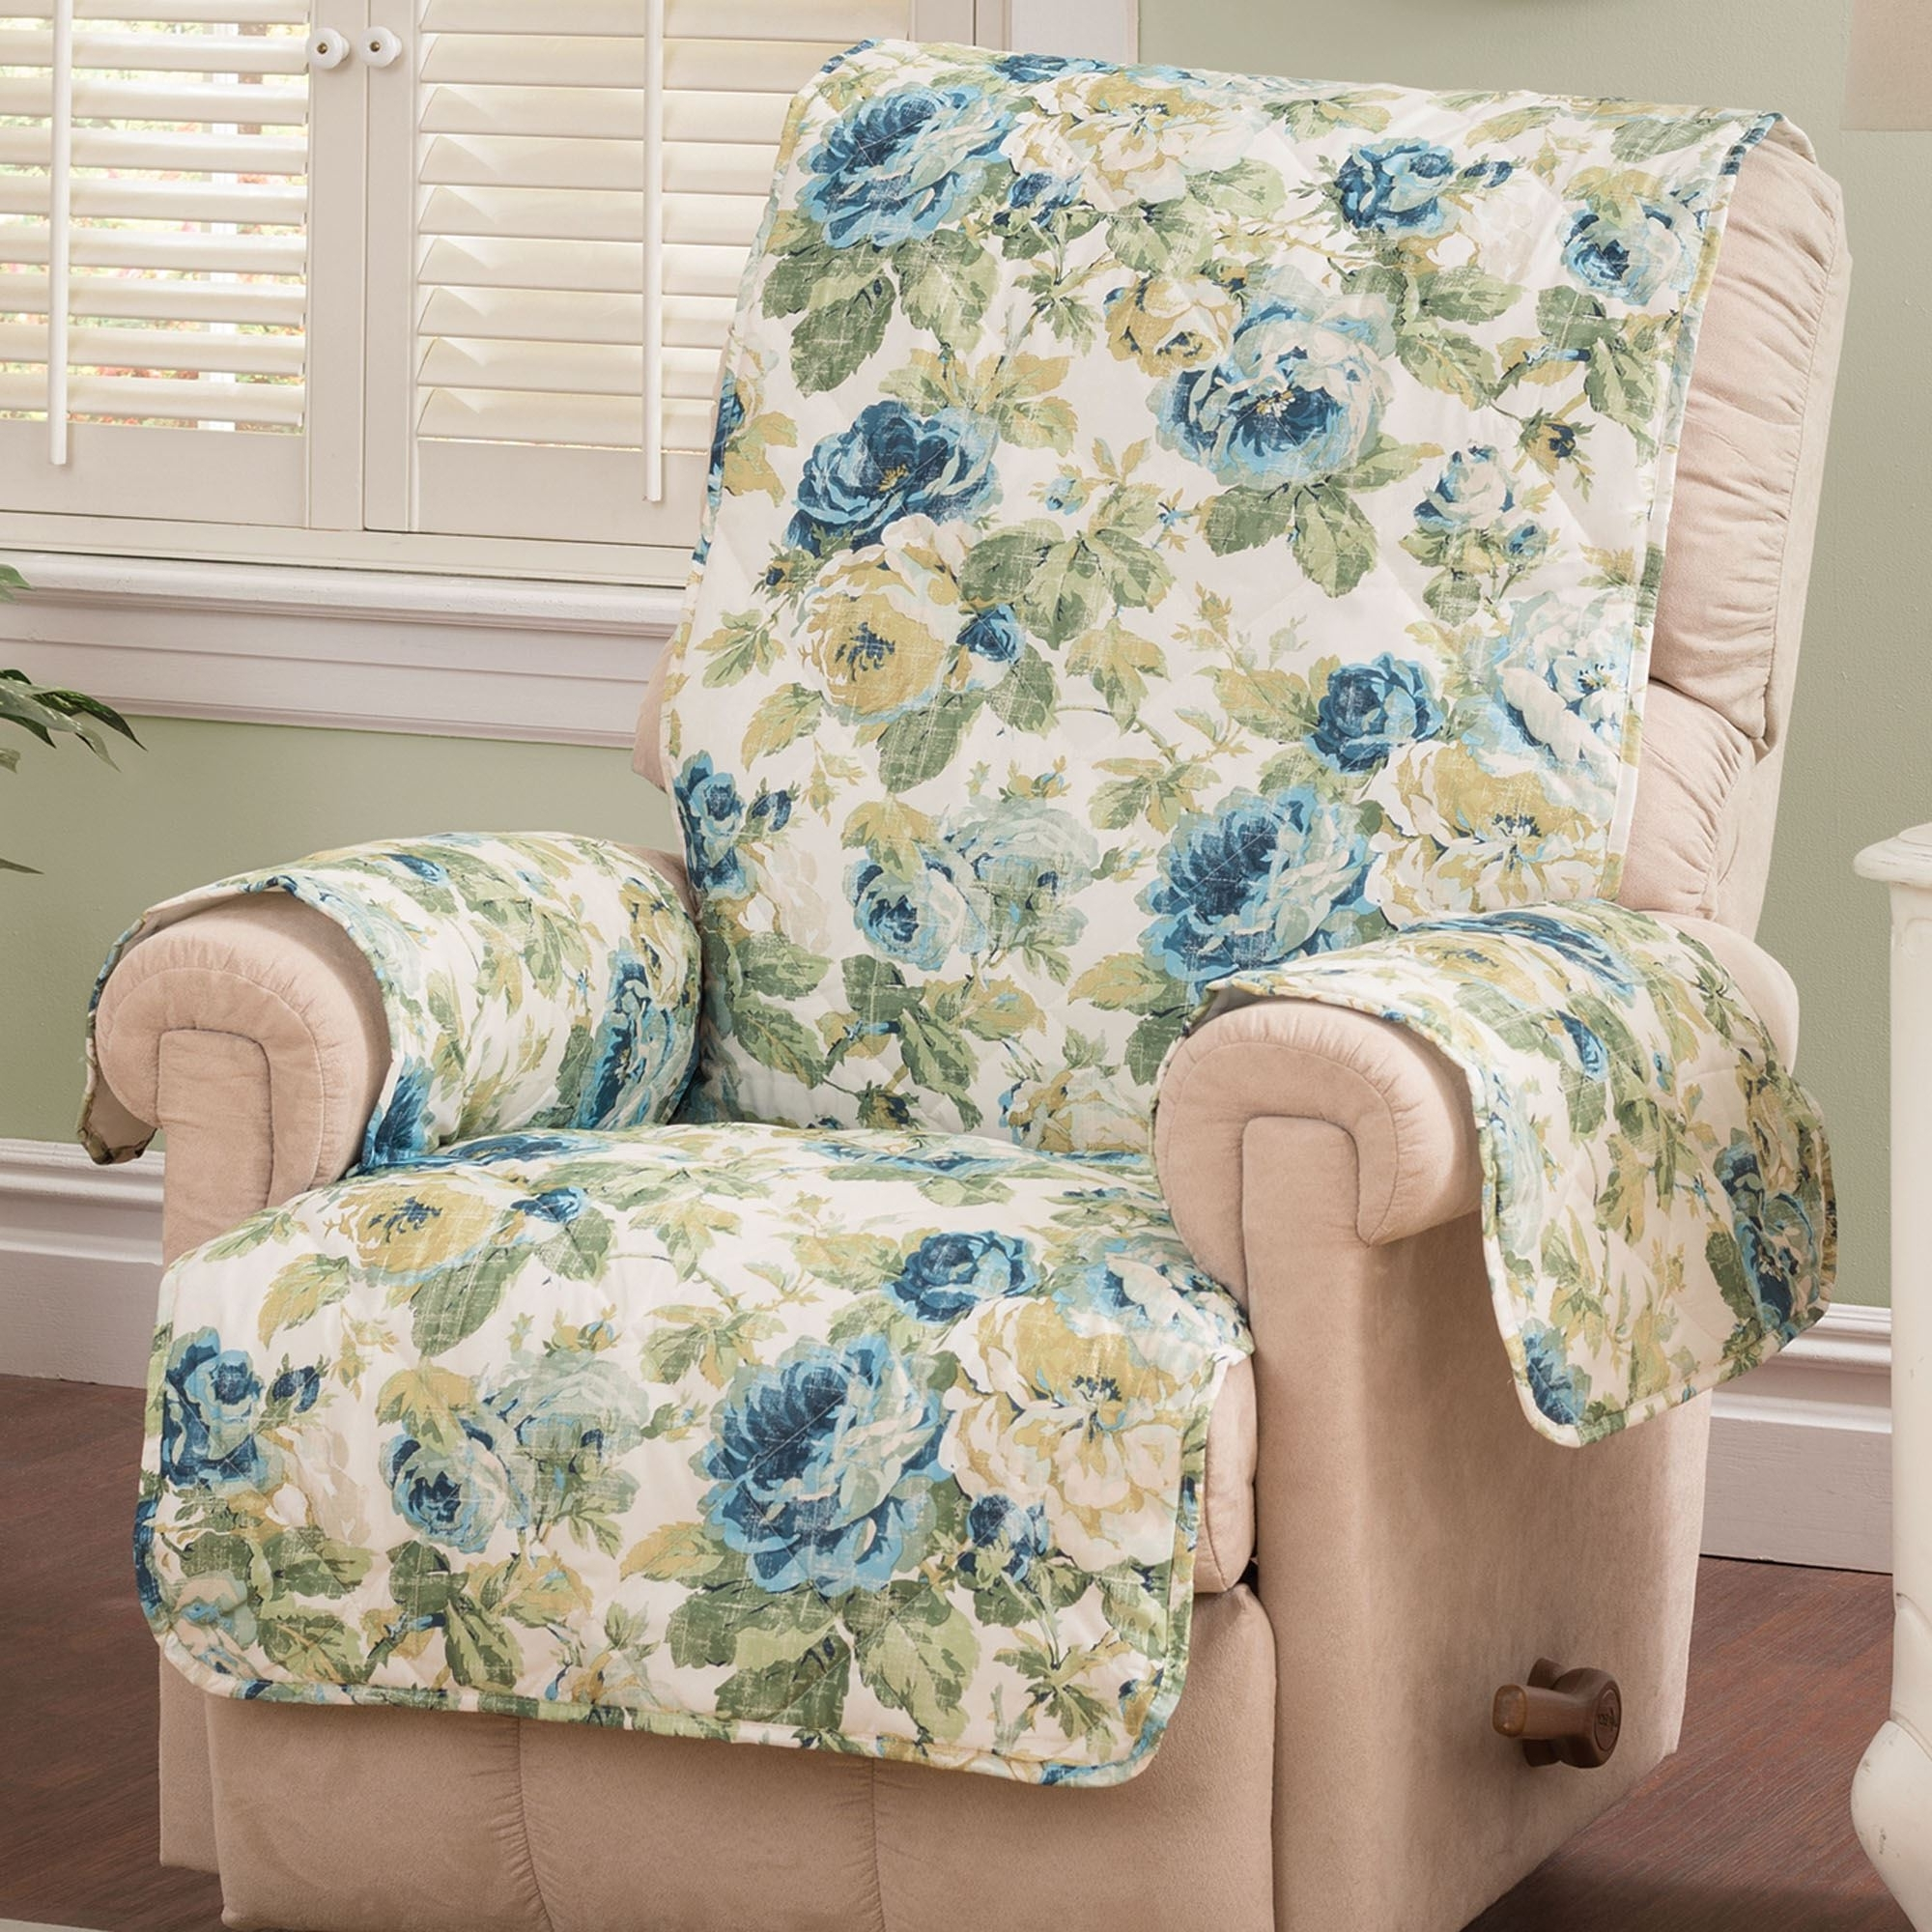 Floral Sofas And Chairs Throughout Most Recent English Floral Sky Blue Quilted Furniture Protectors Protector (View 14 of 20)